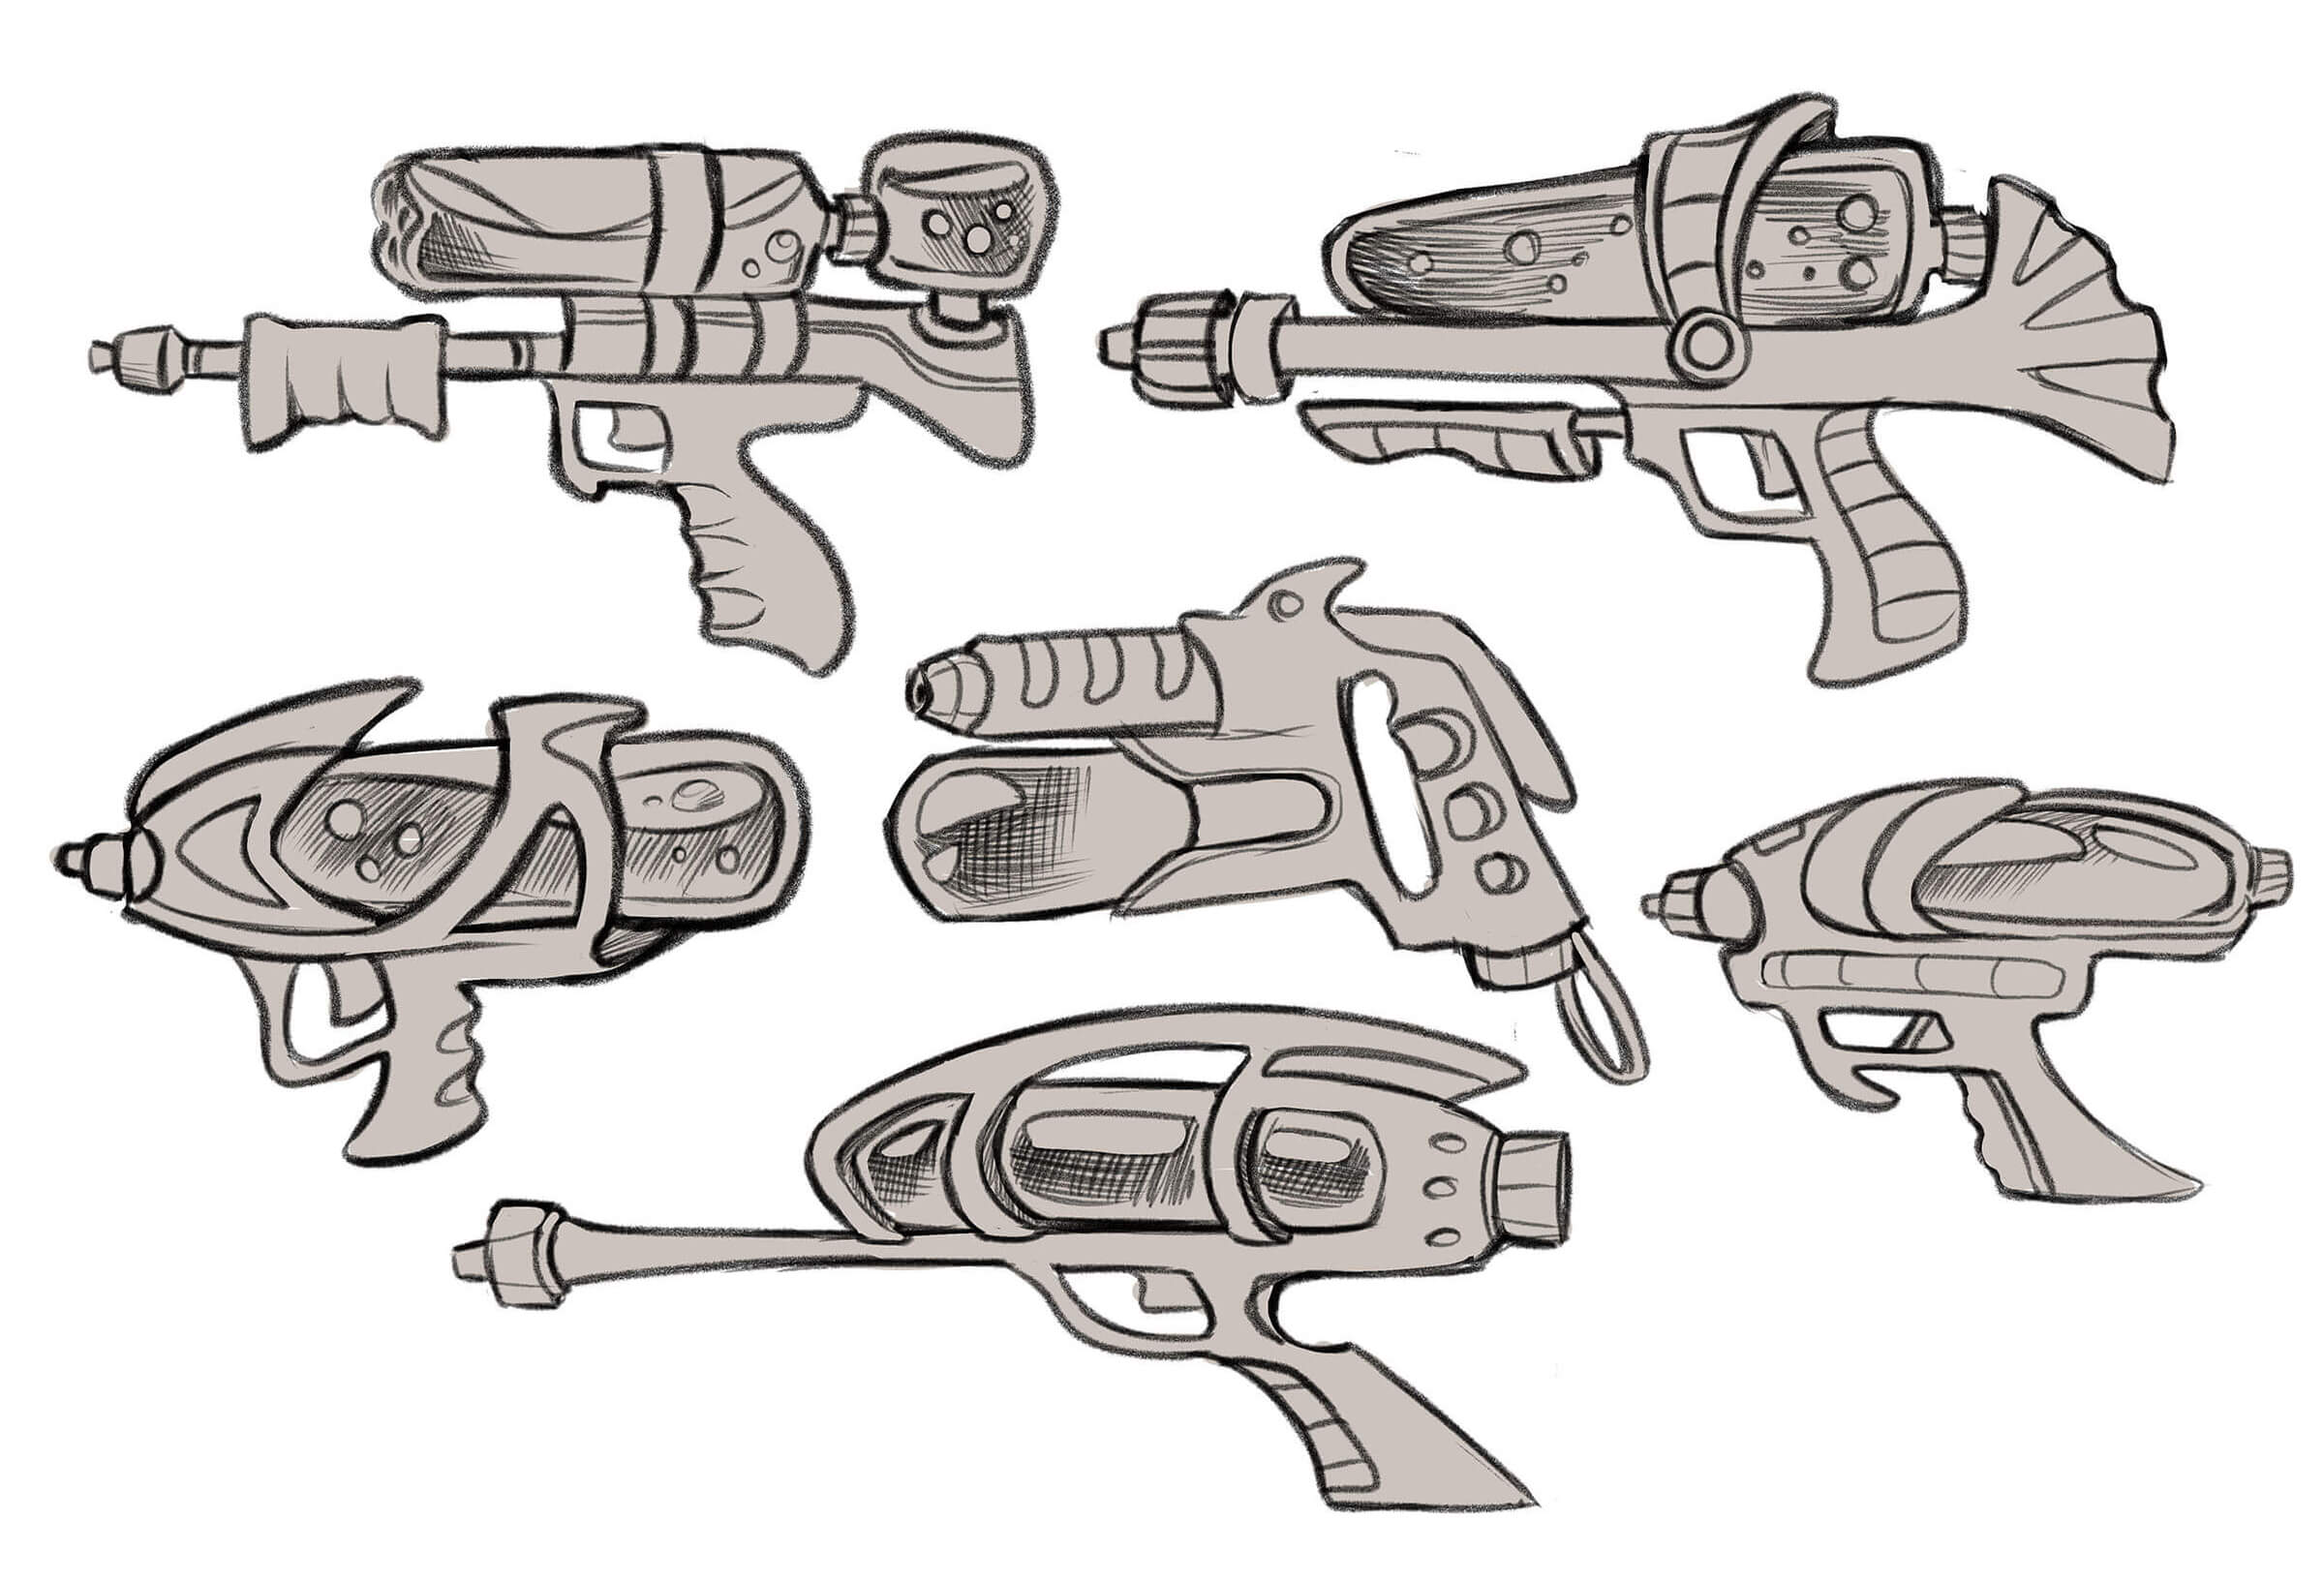 Sketches of sci-fi water guns